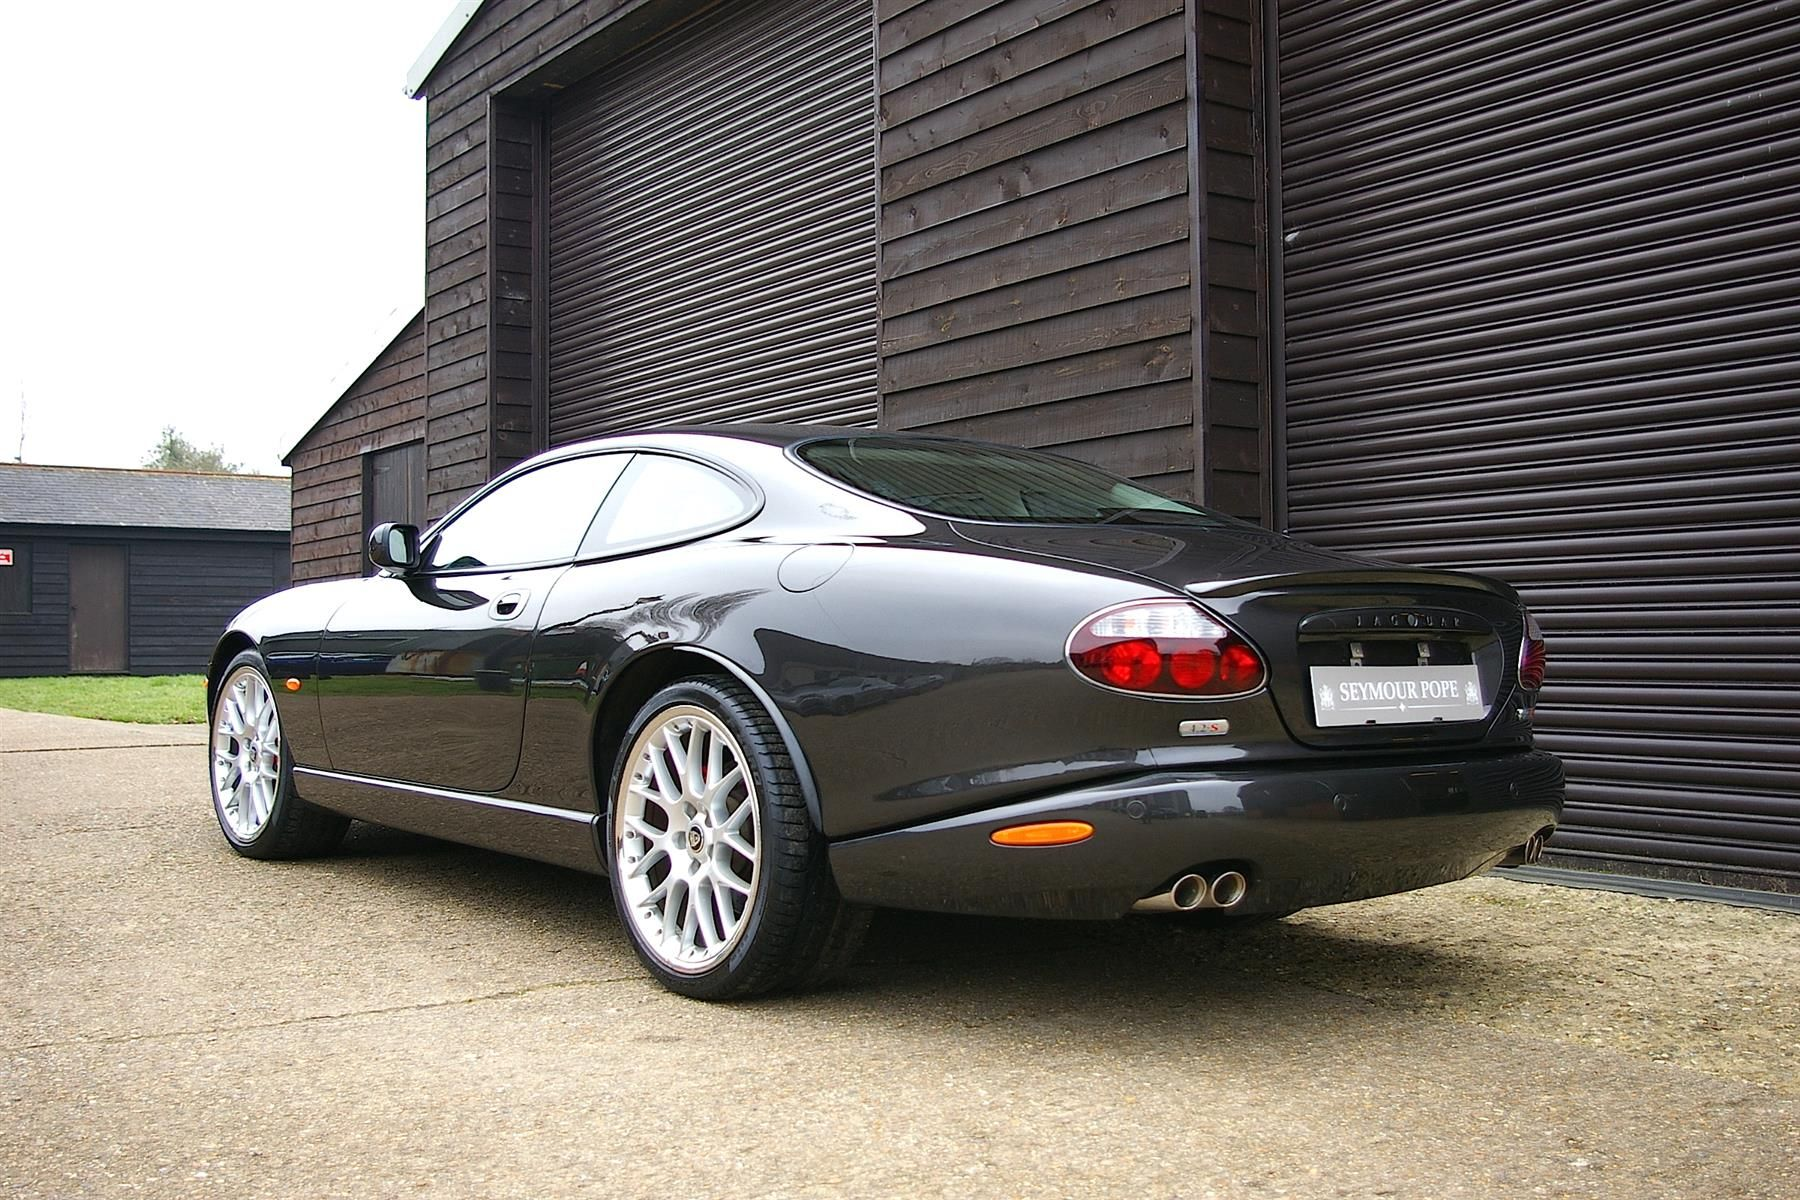 sale used in xk petrol coupe now jaguar silver metallic xkr for gloucestershire chepstow monmouthshire on